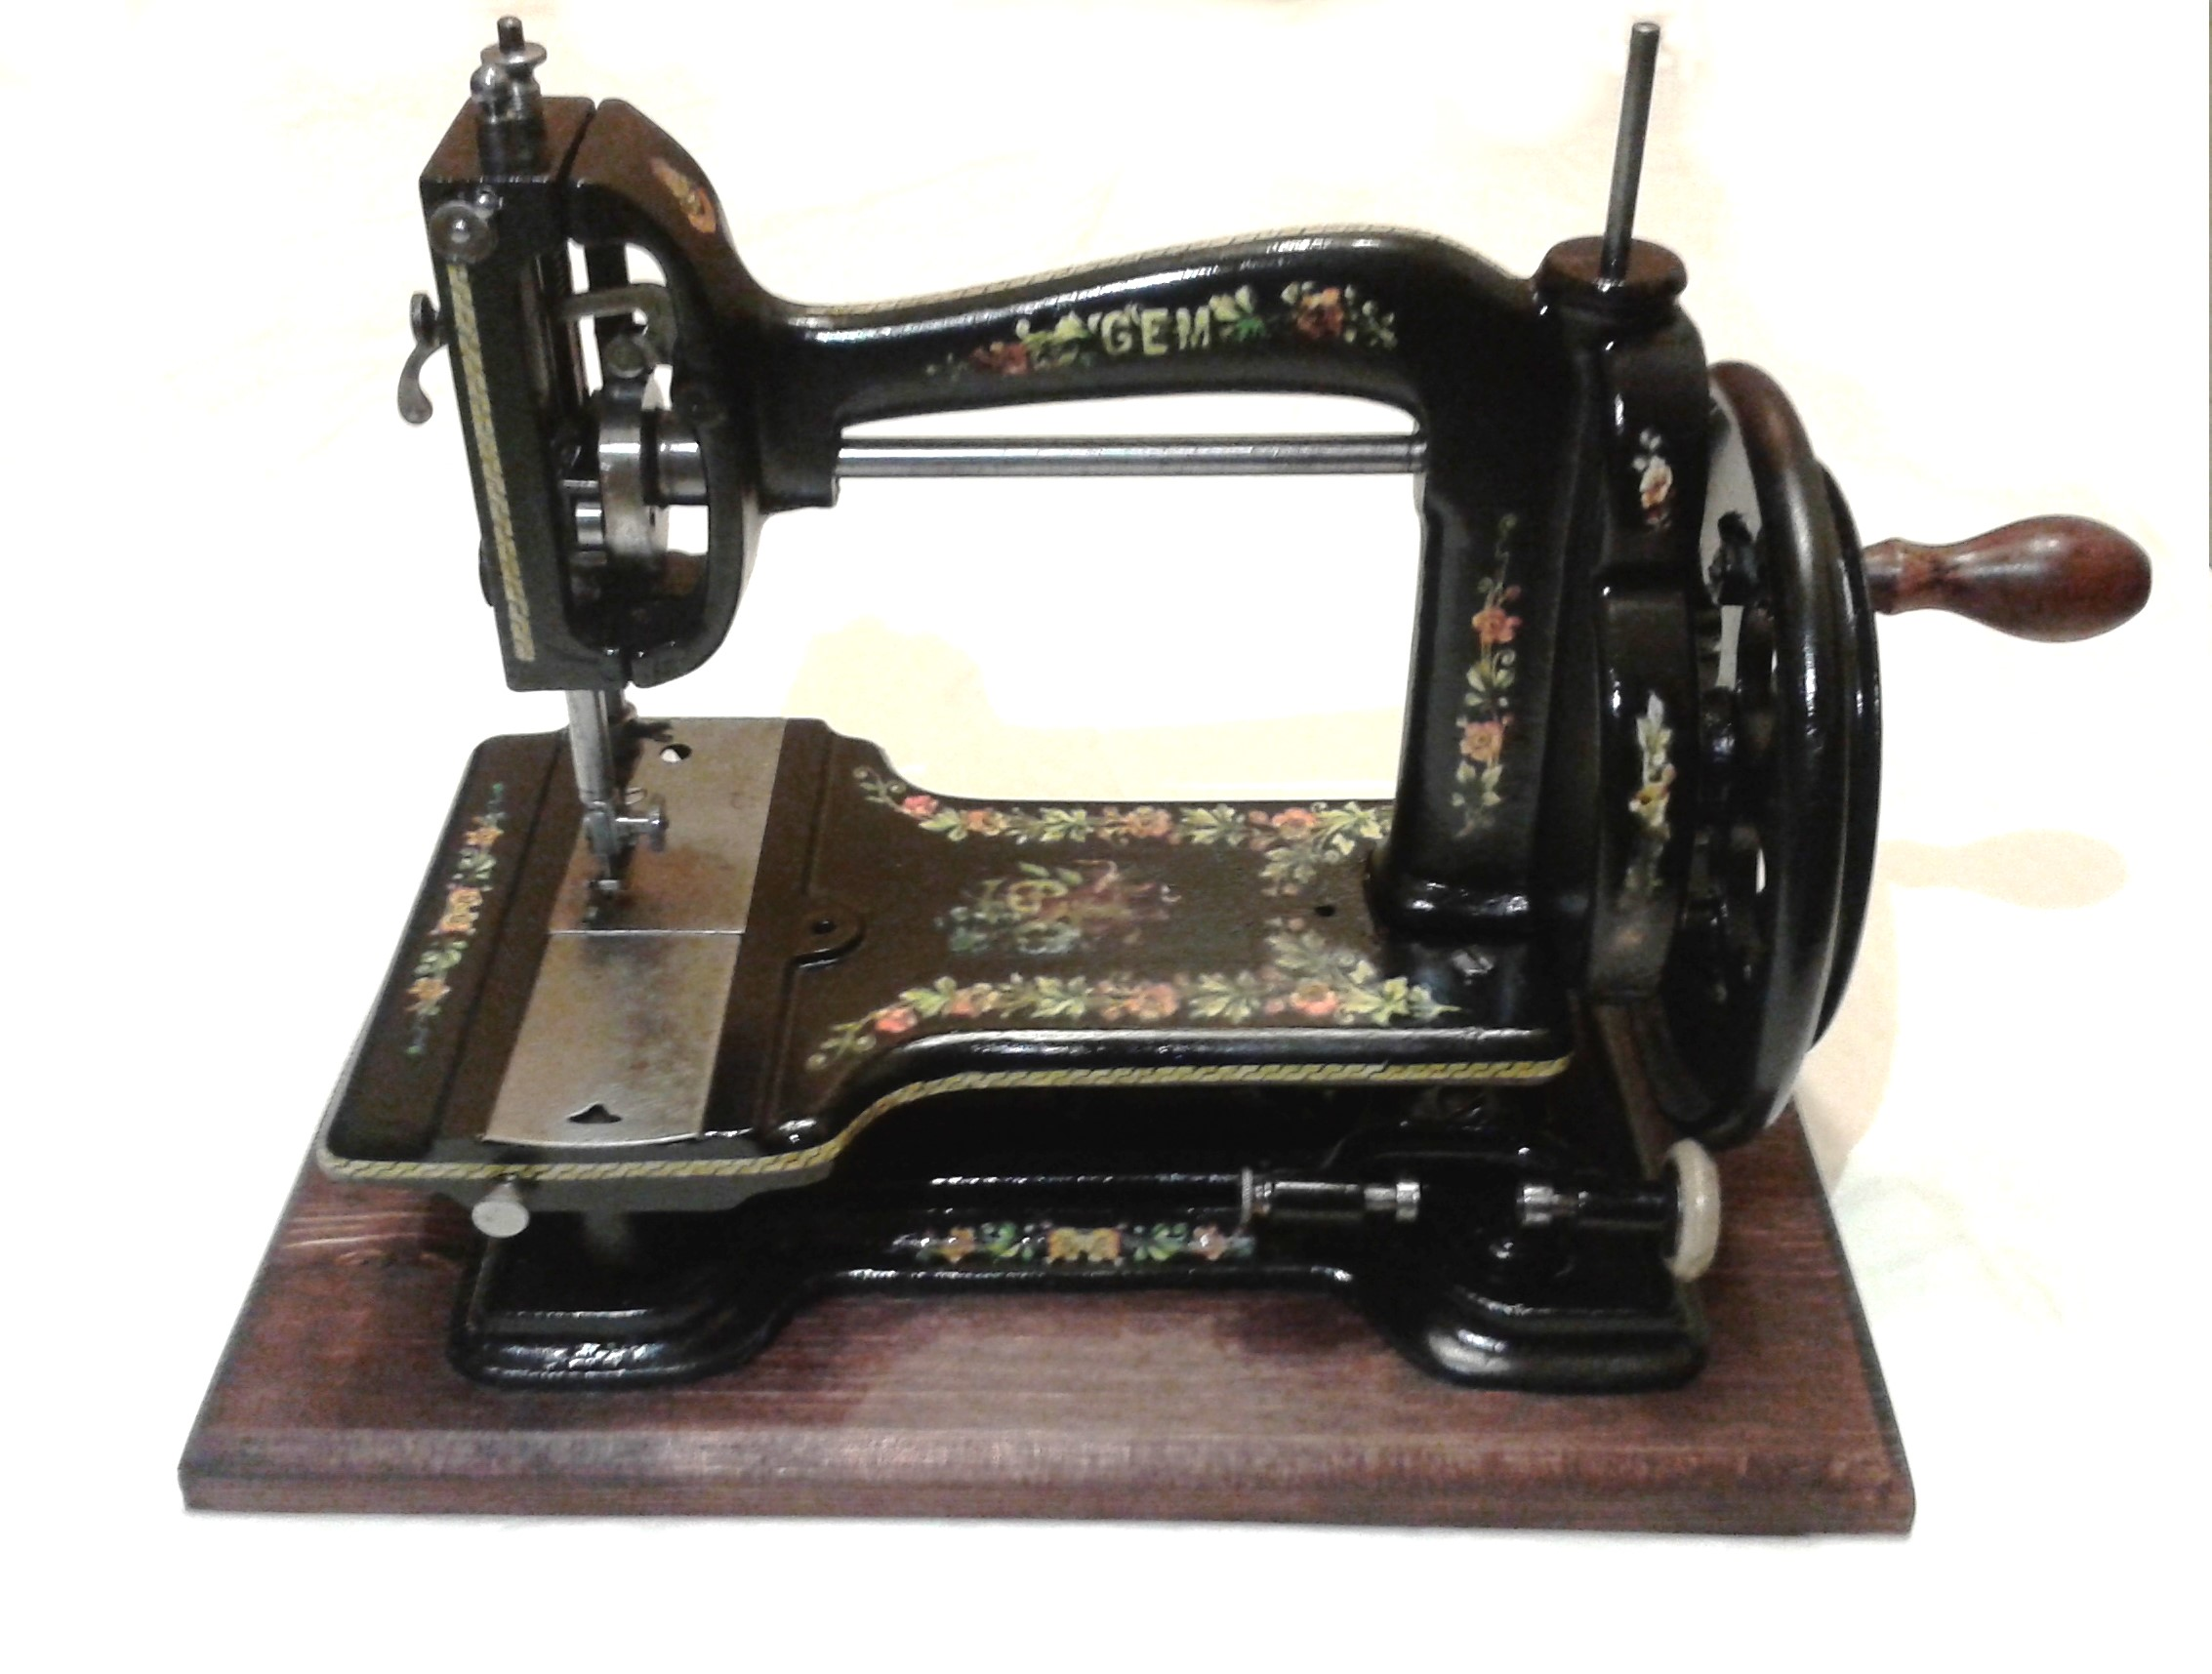 Cheap Sewing Machines Australia List Of Sewing Machine Brands Wikipedia